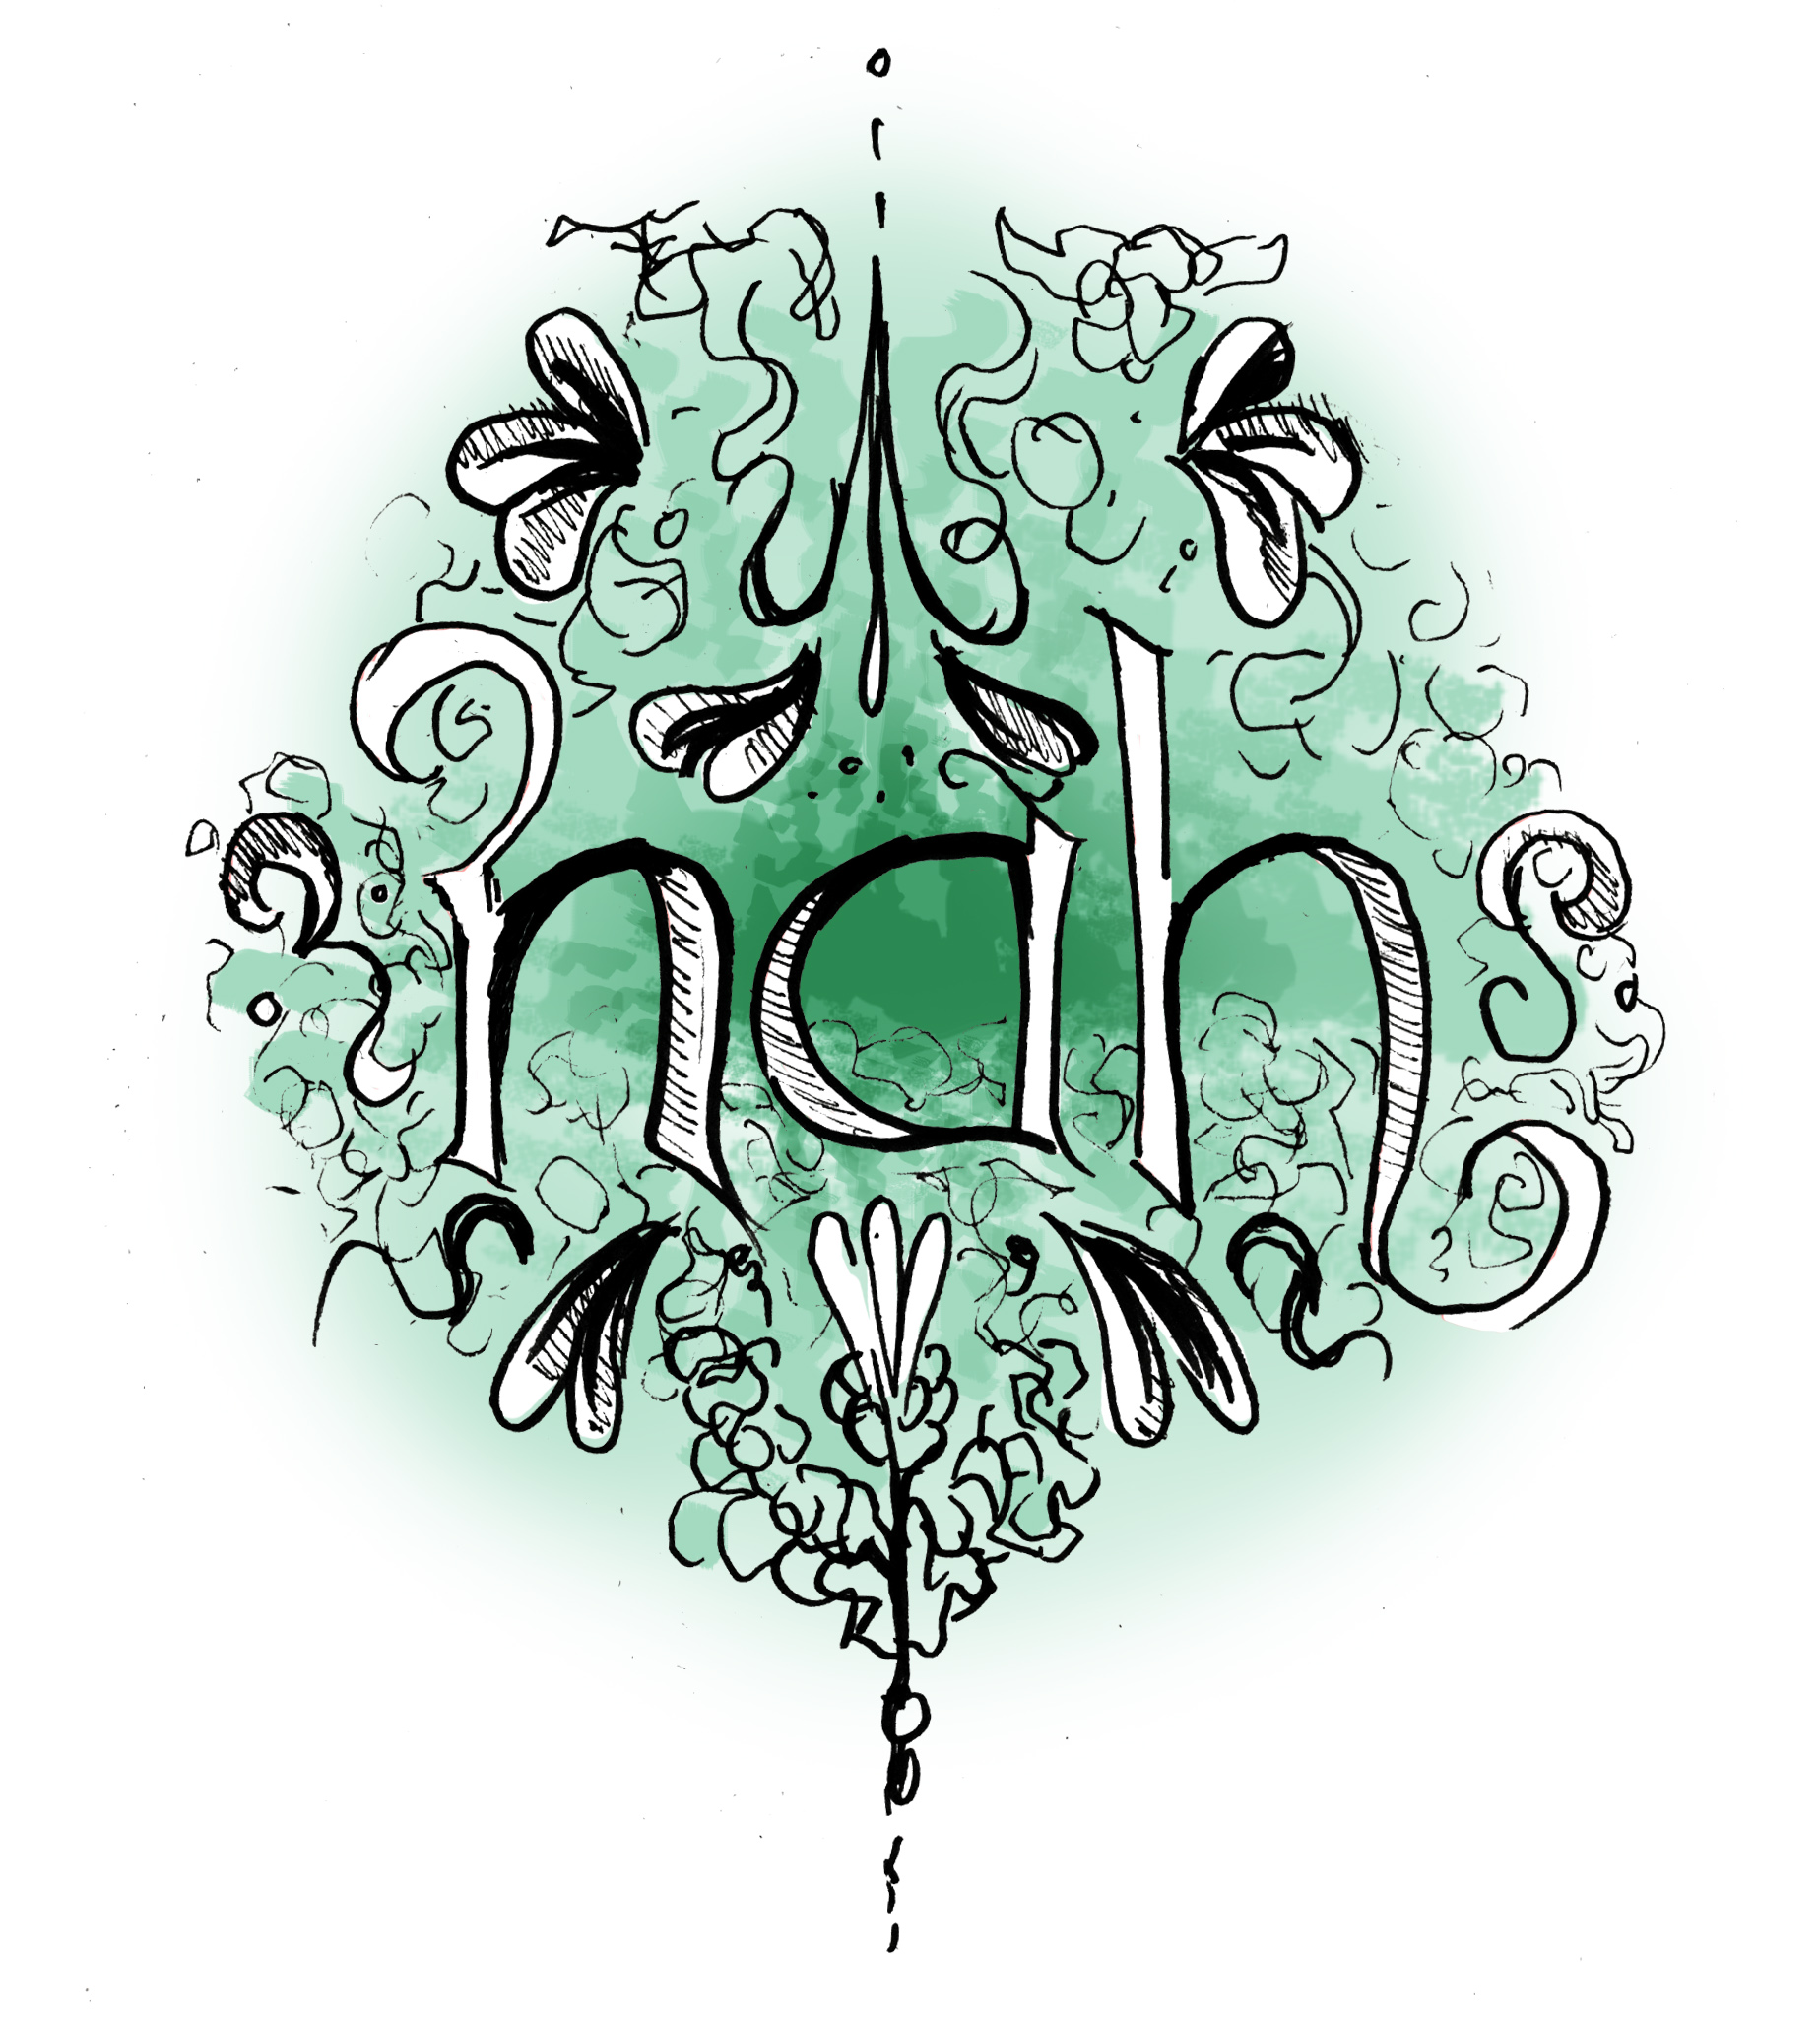 The word 'Nah' written over floral swirls and green colour